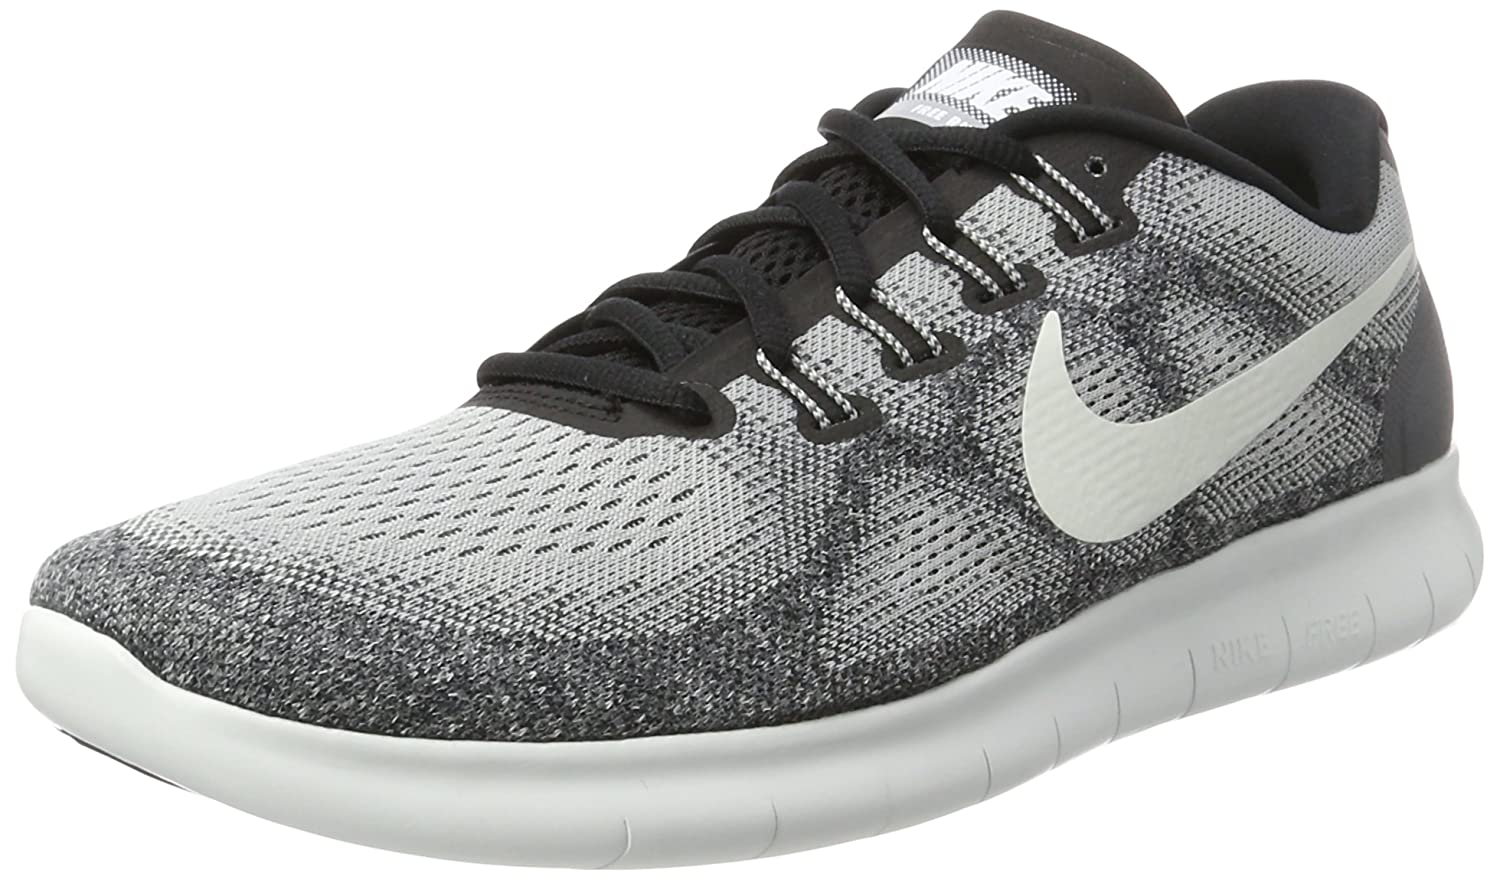 NIKE Men's Free RN Running Shoe B01JZQR232 12 D(M) US|Wolf Grey/Off White-pure